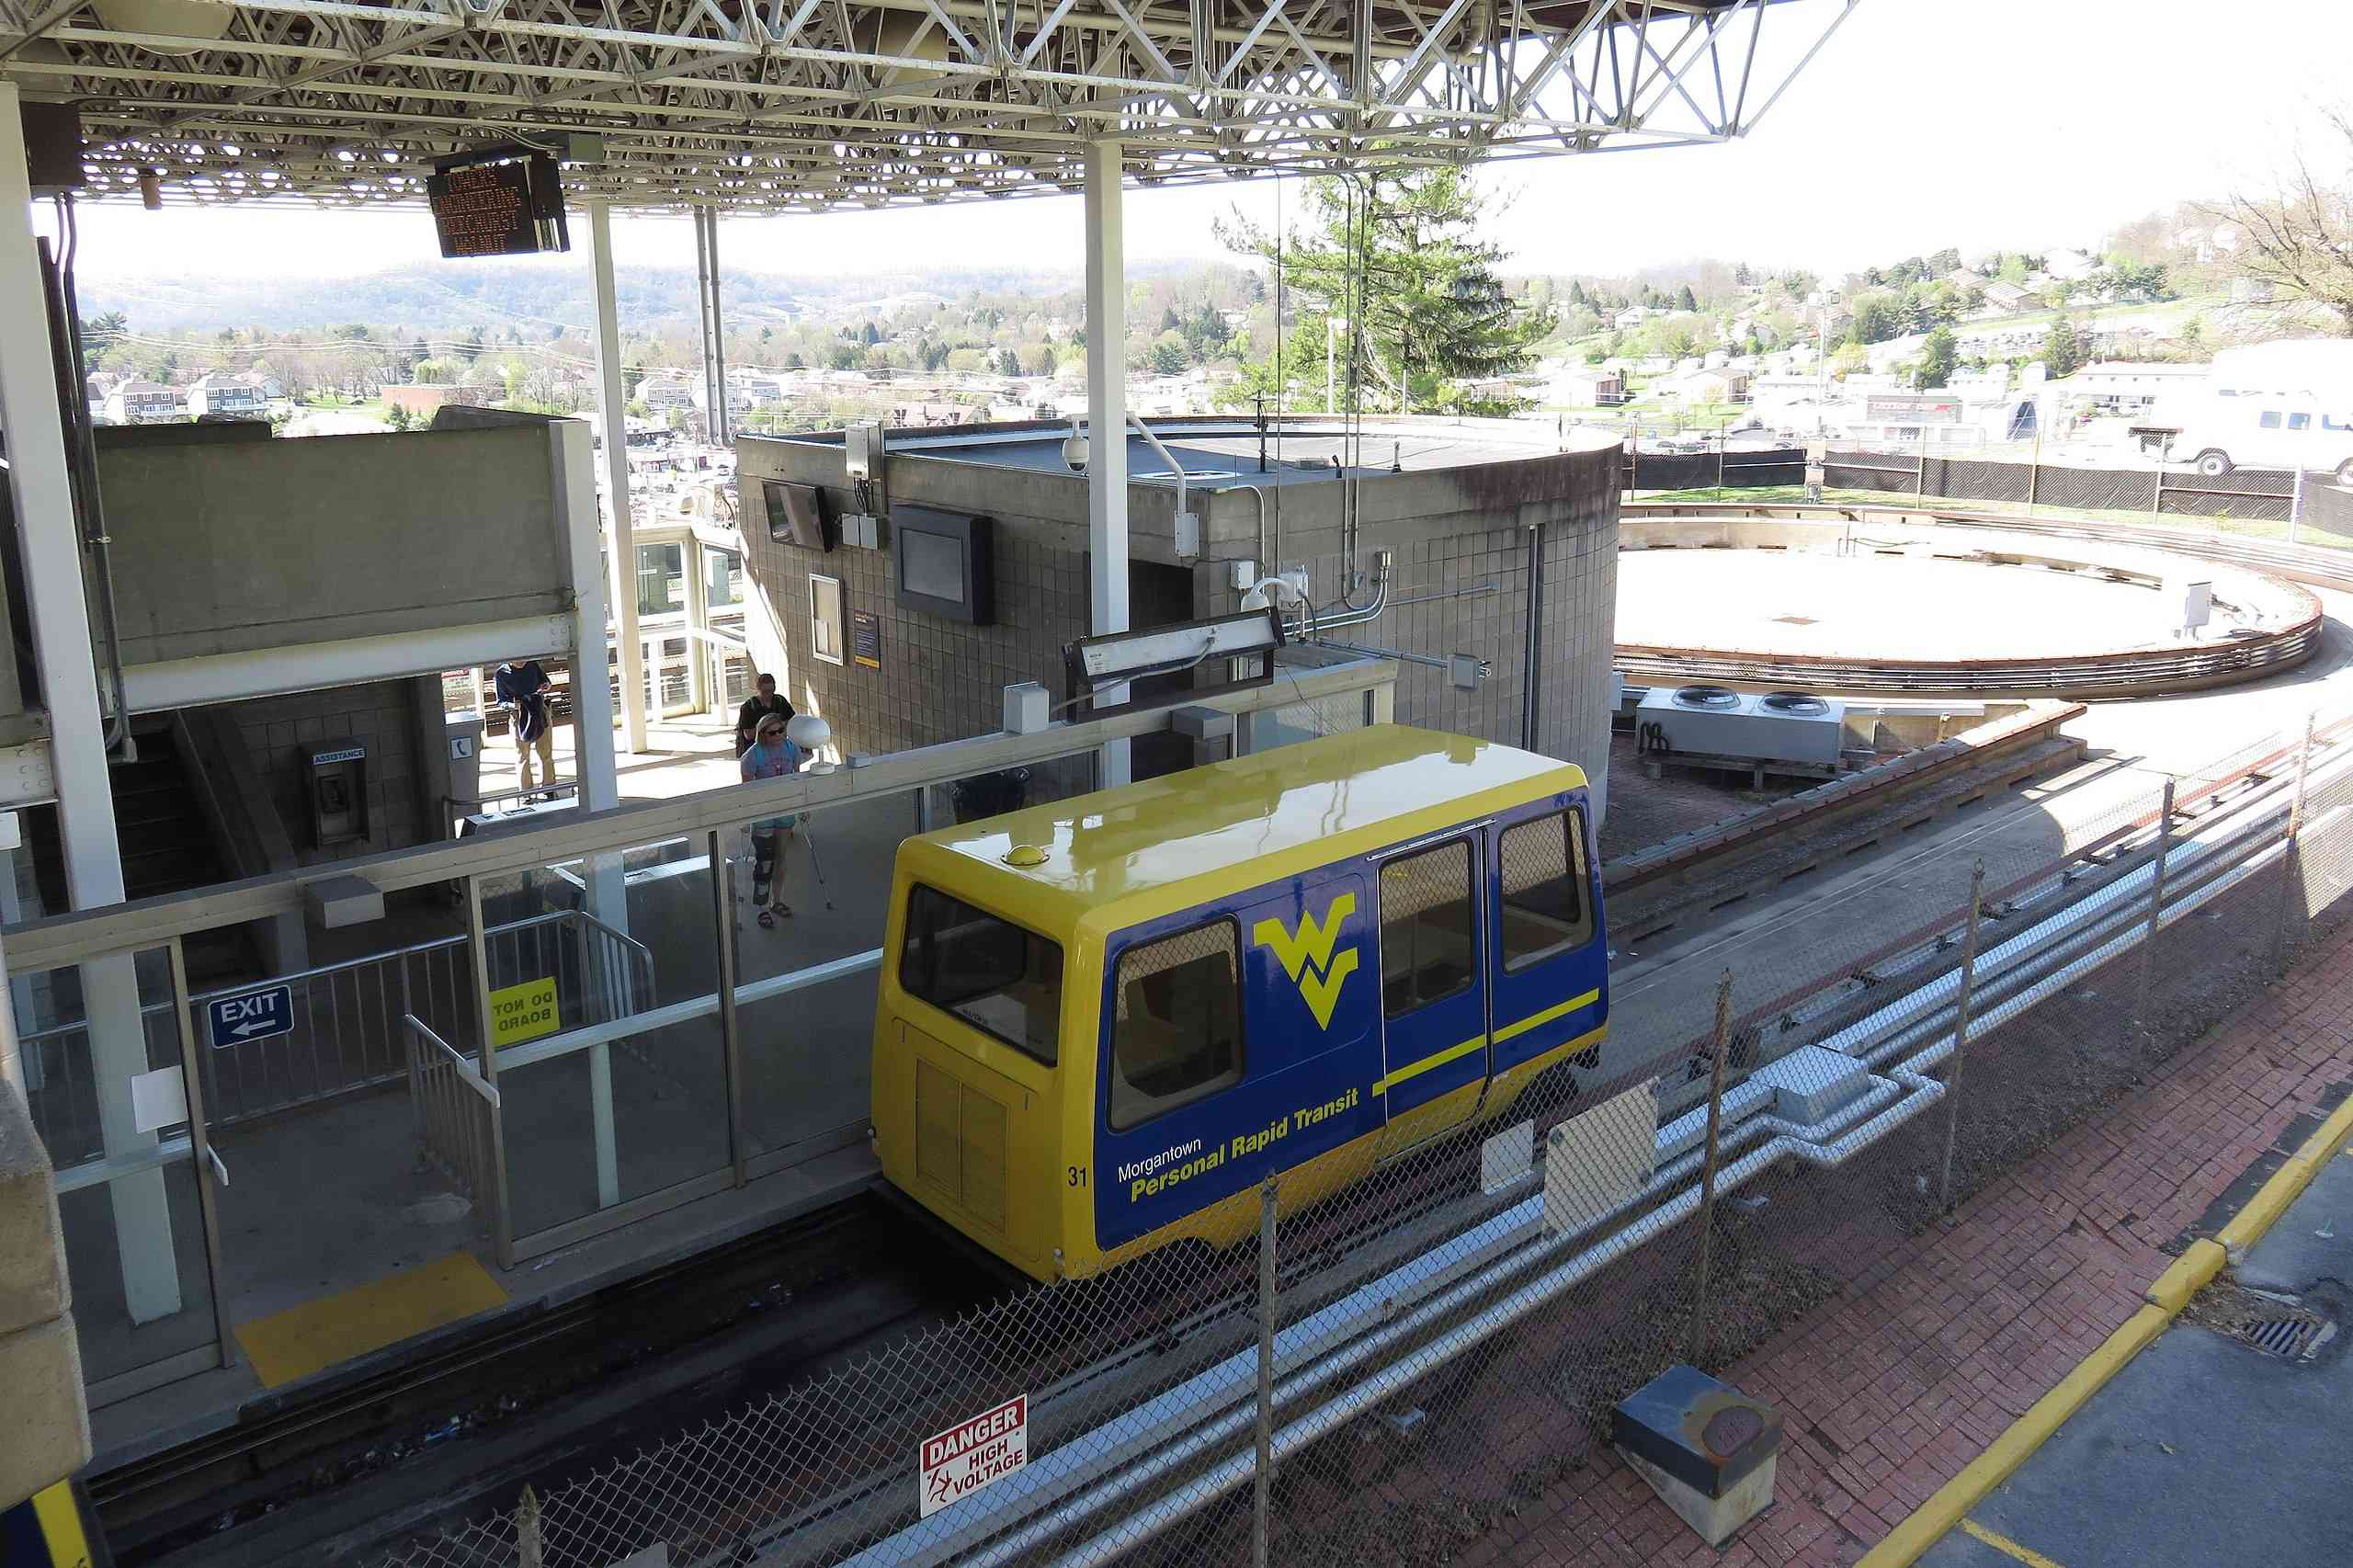 WVU's Personal Rapit Transit car pulling up to station